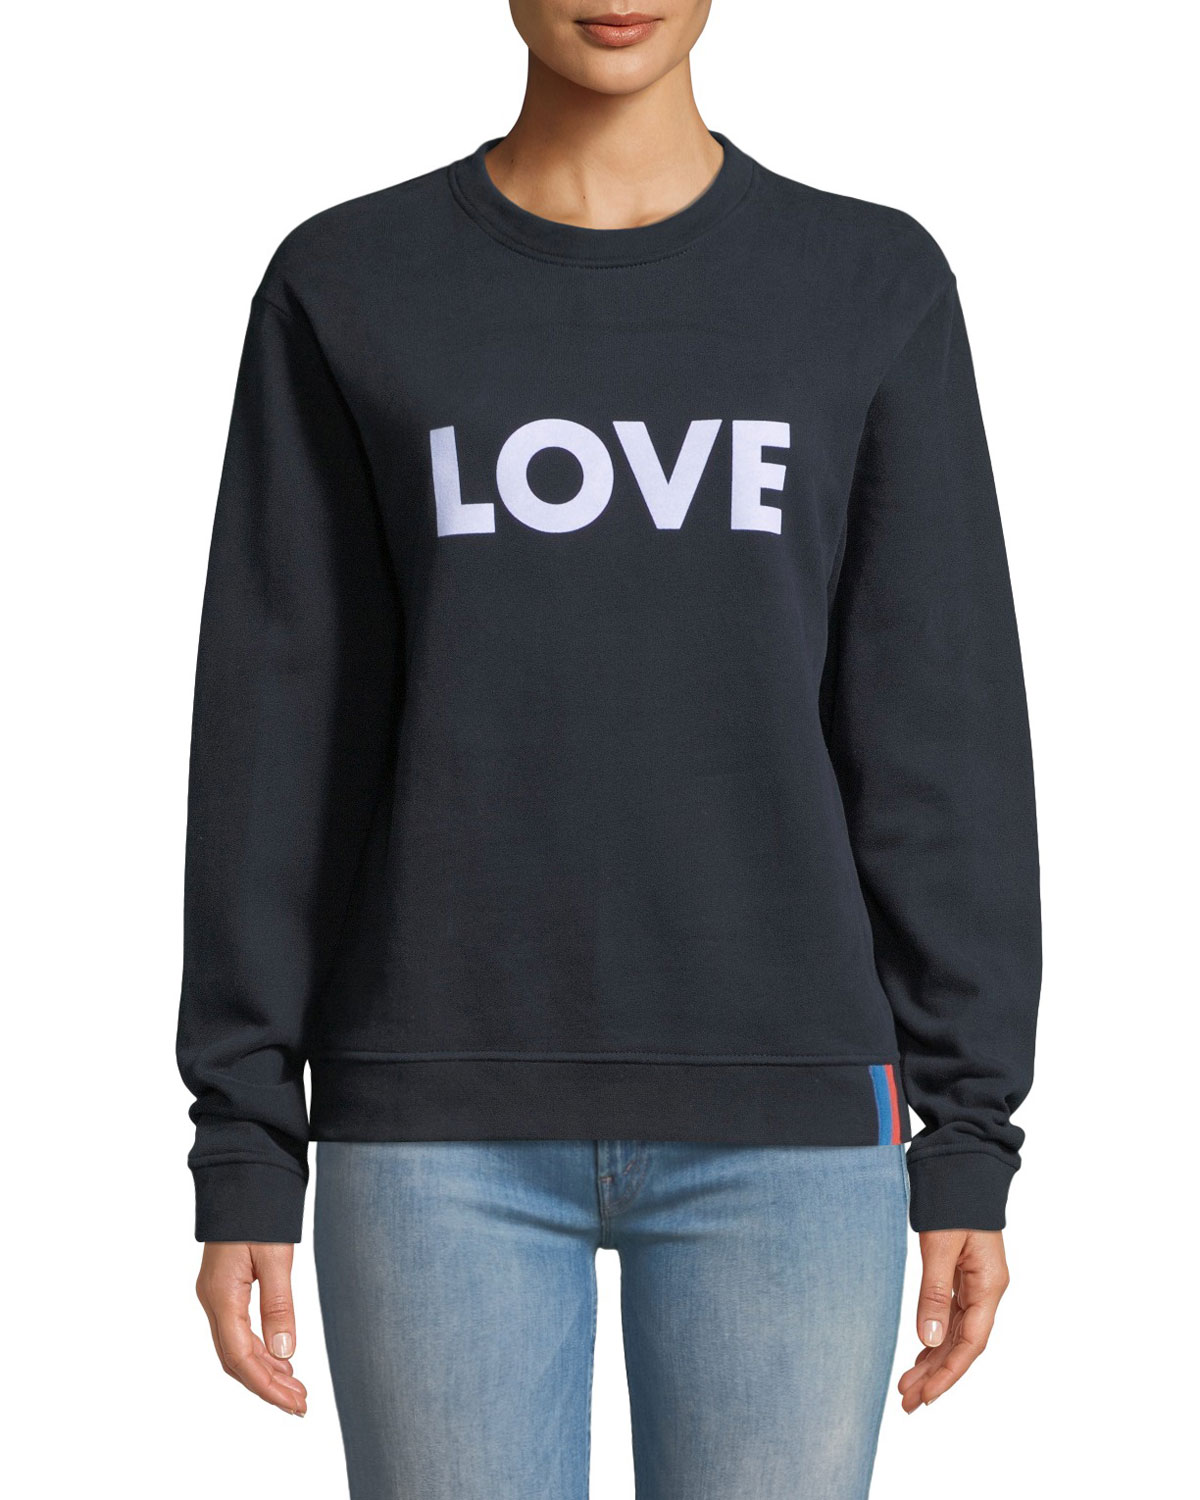 The Raleigh Love Graphic Sweatshirt